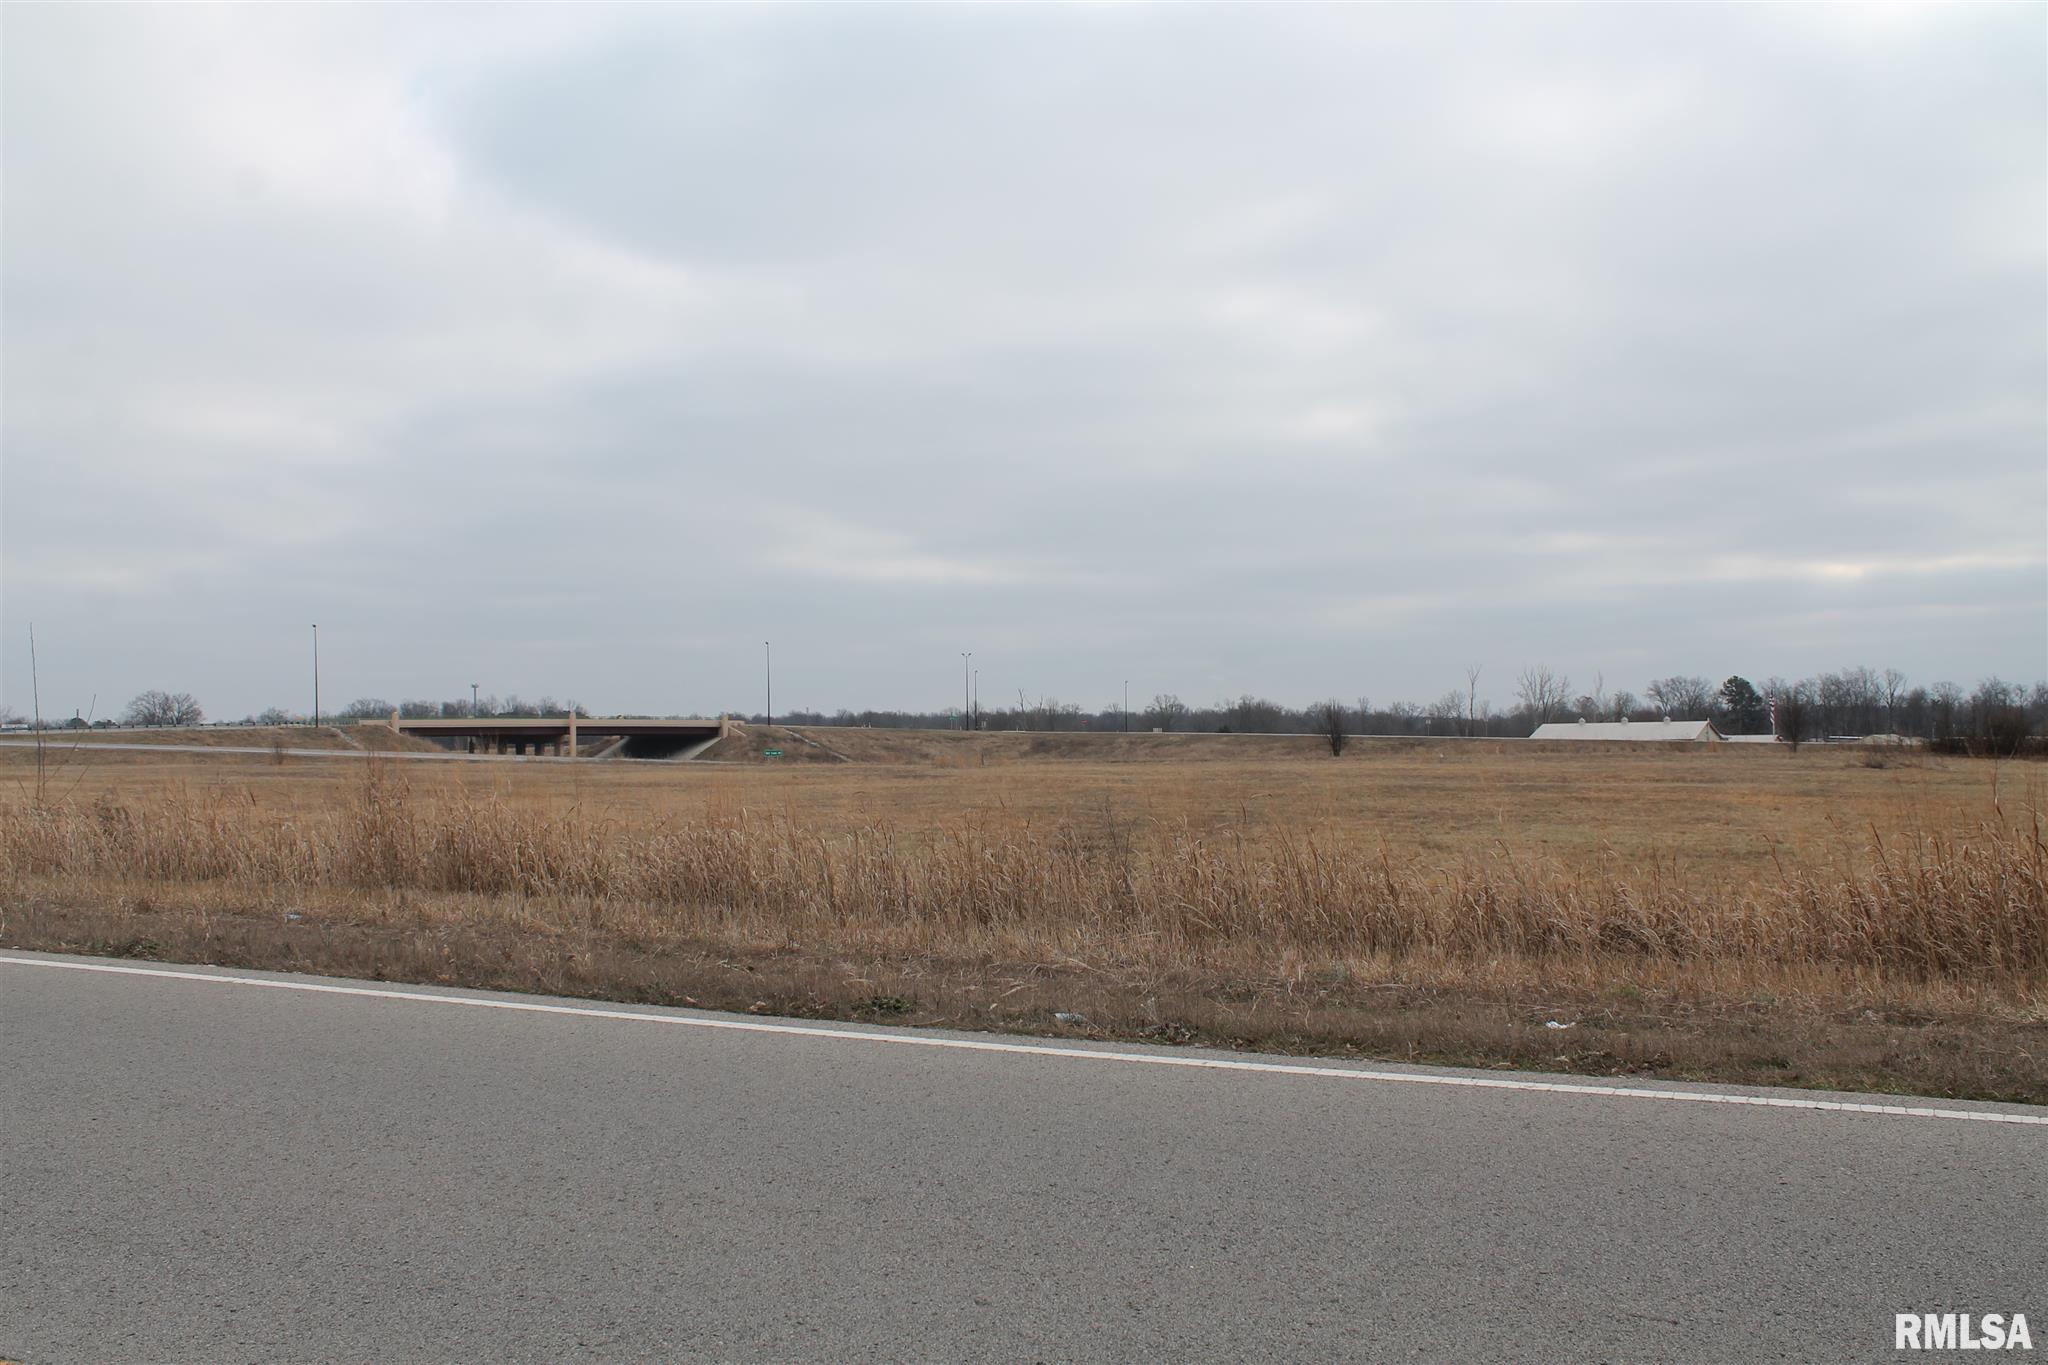 000 N FRONTAGE Property Photo - Crainville, IL real estate listing